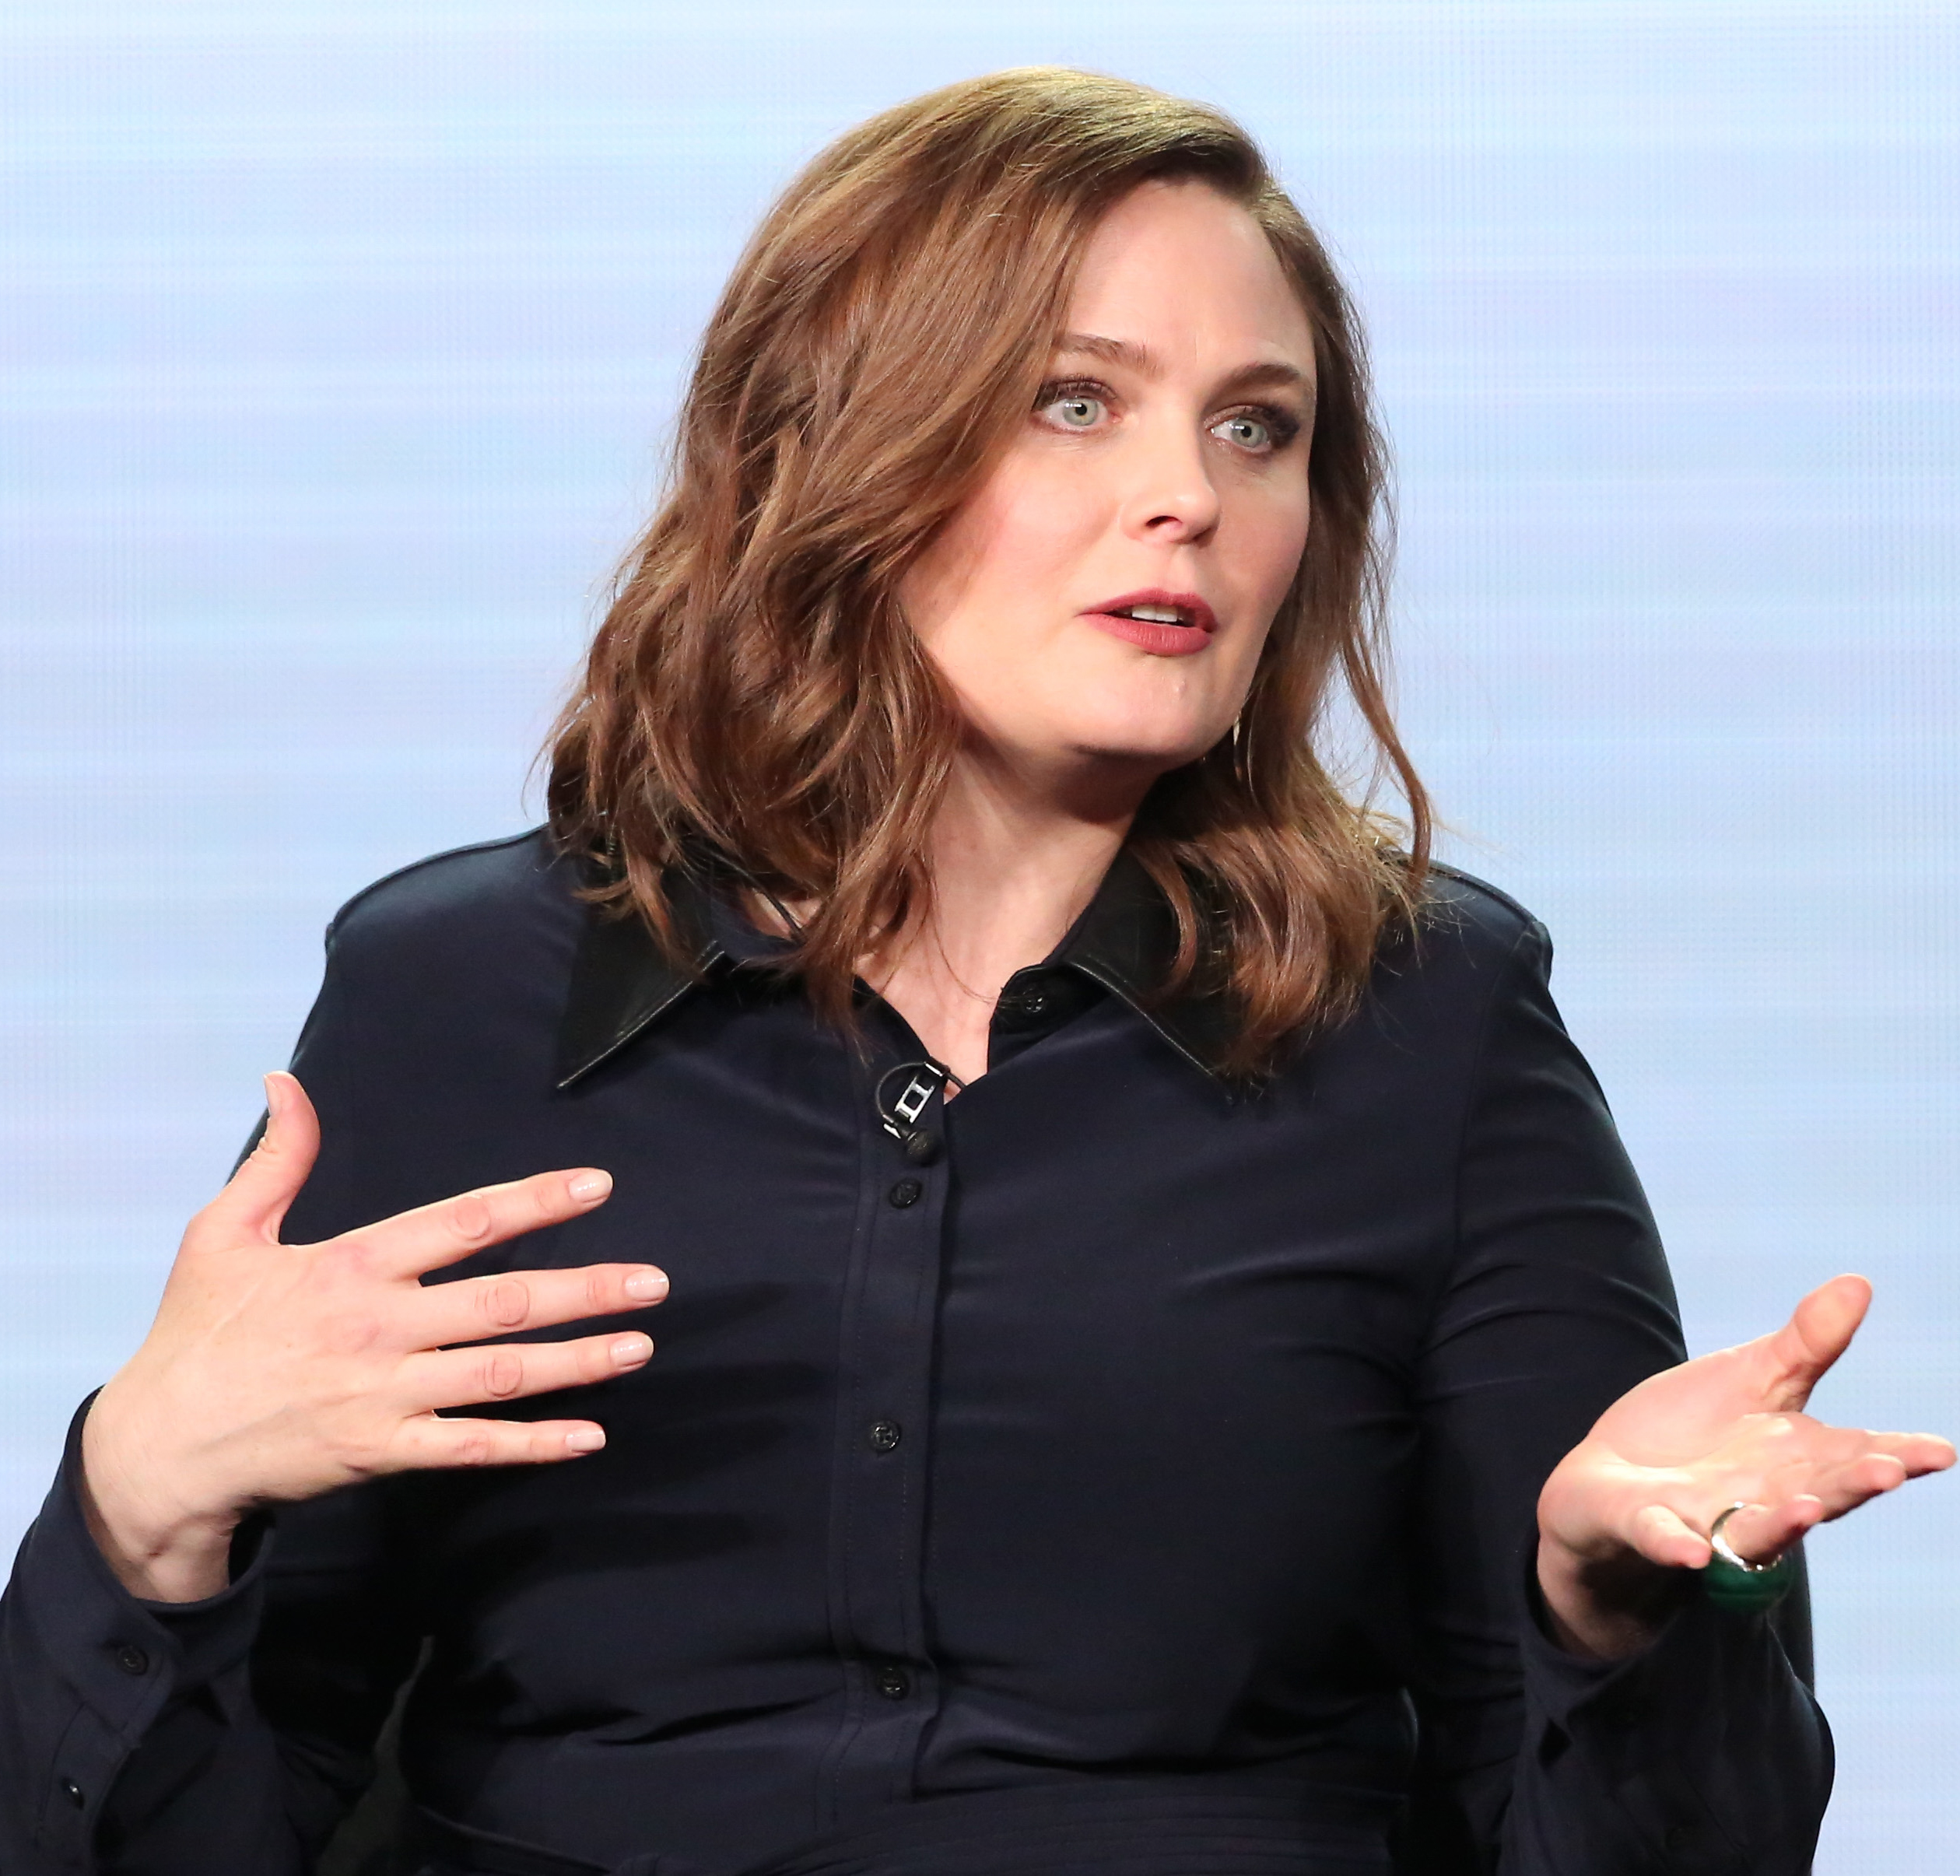 Mandatory Credit: Photo by Buchan/Variety/REX/Shutterstock (7775173aj) Emily Deschanel FOX's 'Bones' Panel, TCA Winter Press Tour, Day 7, Los Angeles, USA - 11 Jan 2017